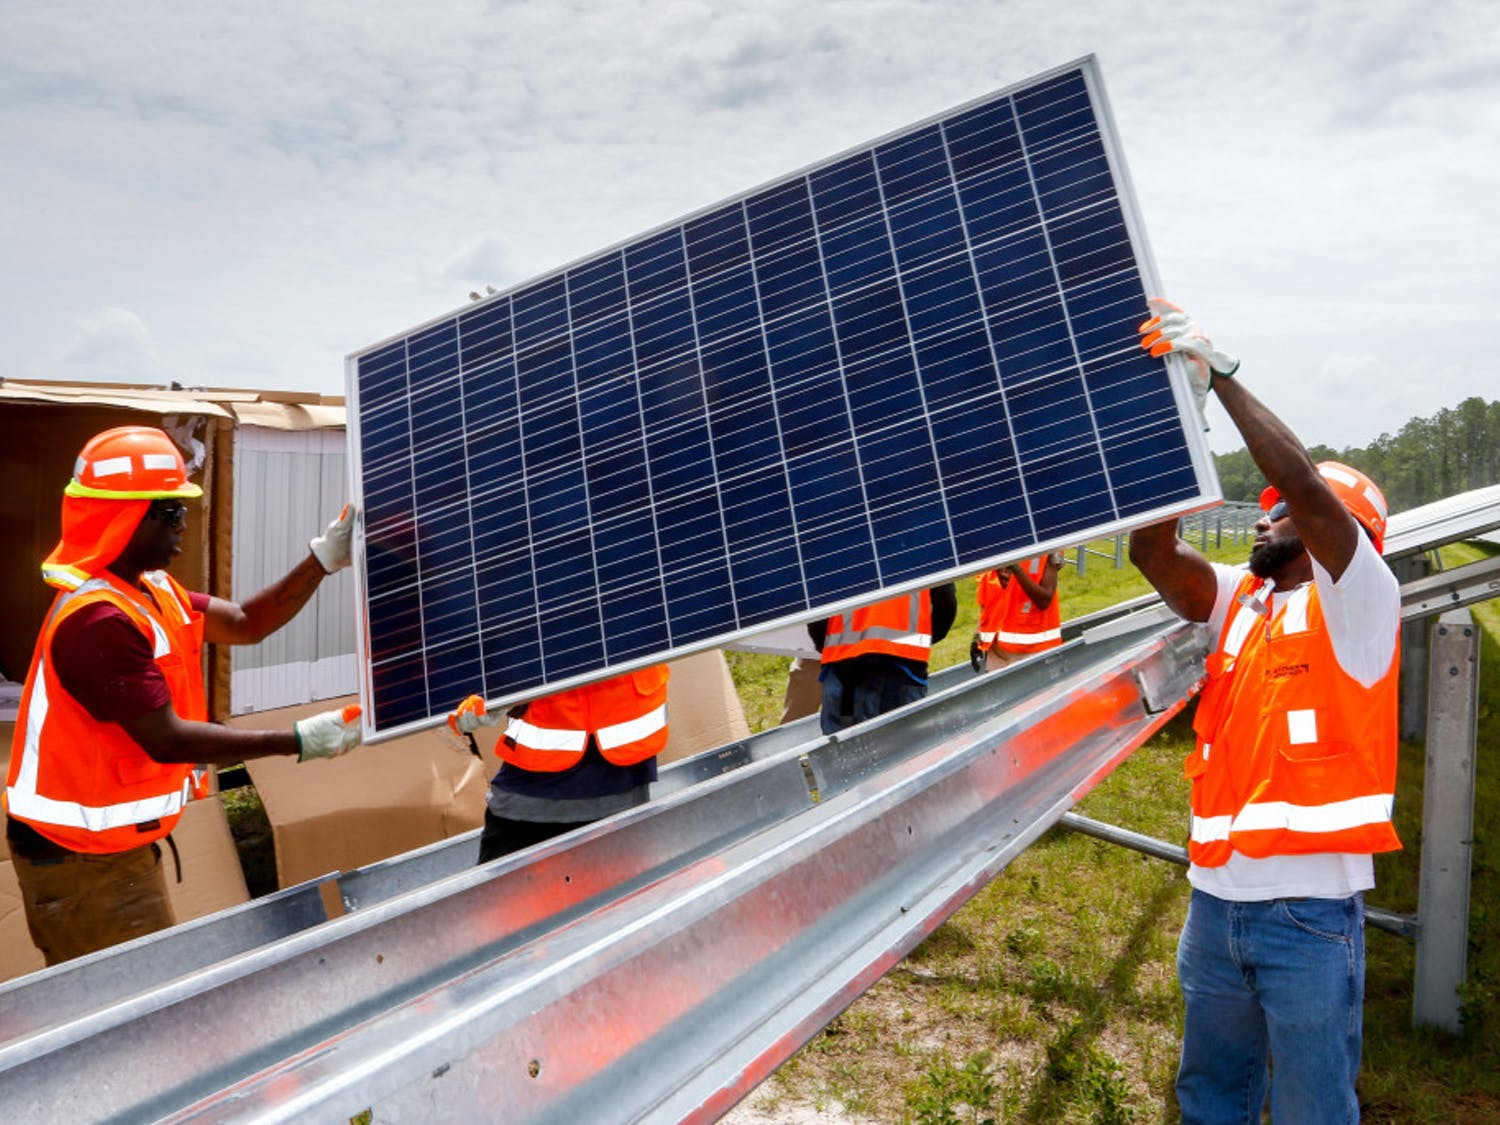 Florida Power & Light's Horizon Solar Energy Center will be made up of 330,000 photovoltaic solar cells capable of generating 74.5 megawatts of electricity a year, said FPL spokesperson Stephen Heiman. By 2023, FPL plans to be able to power 420,000 homes with the energy collected through solar panels.